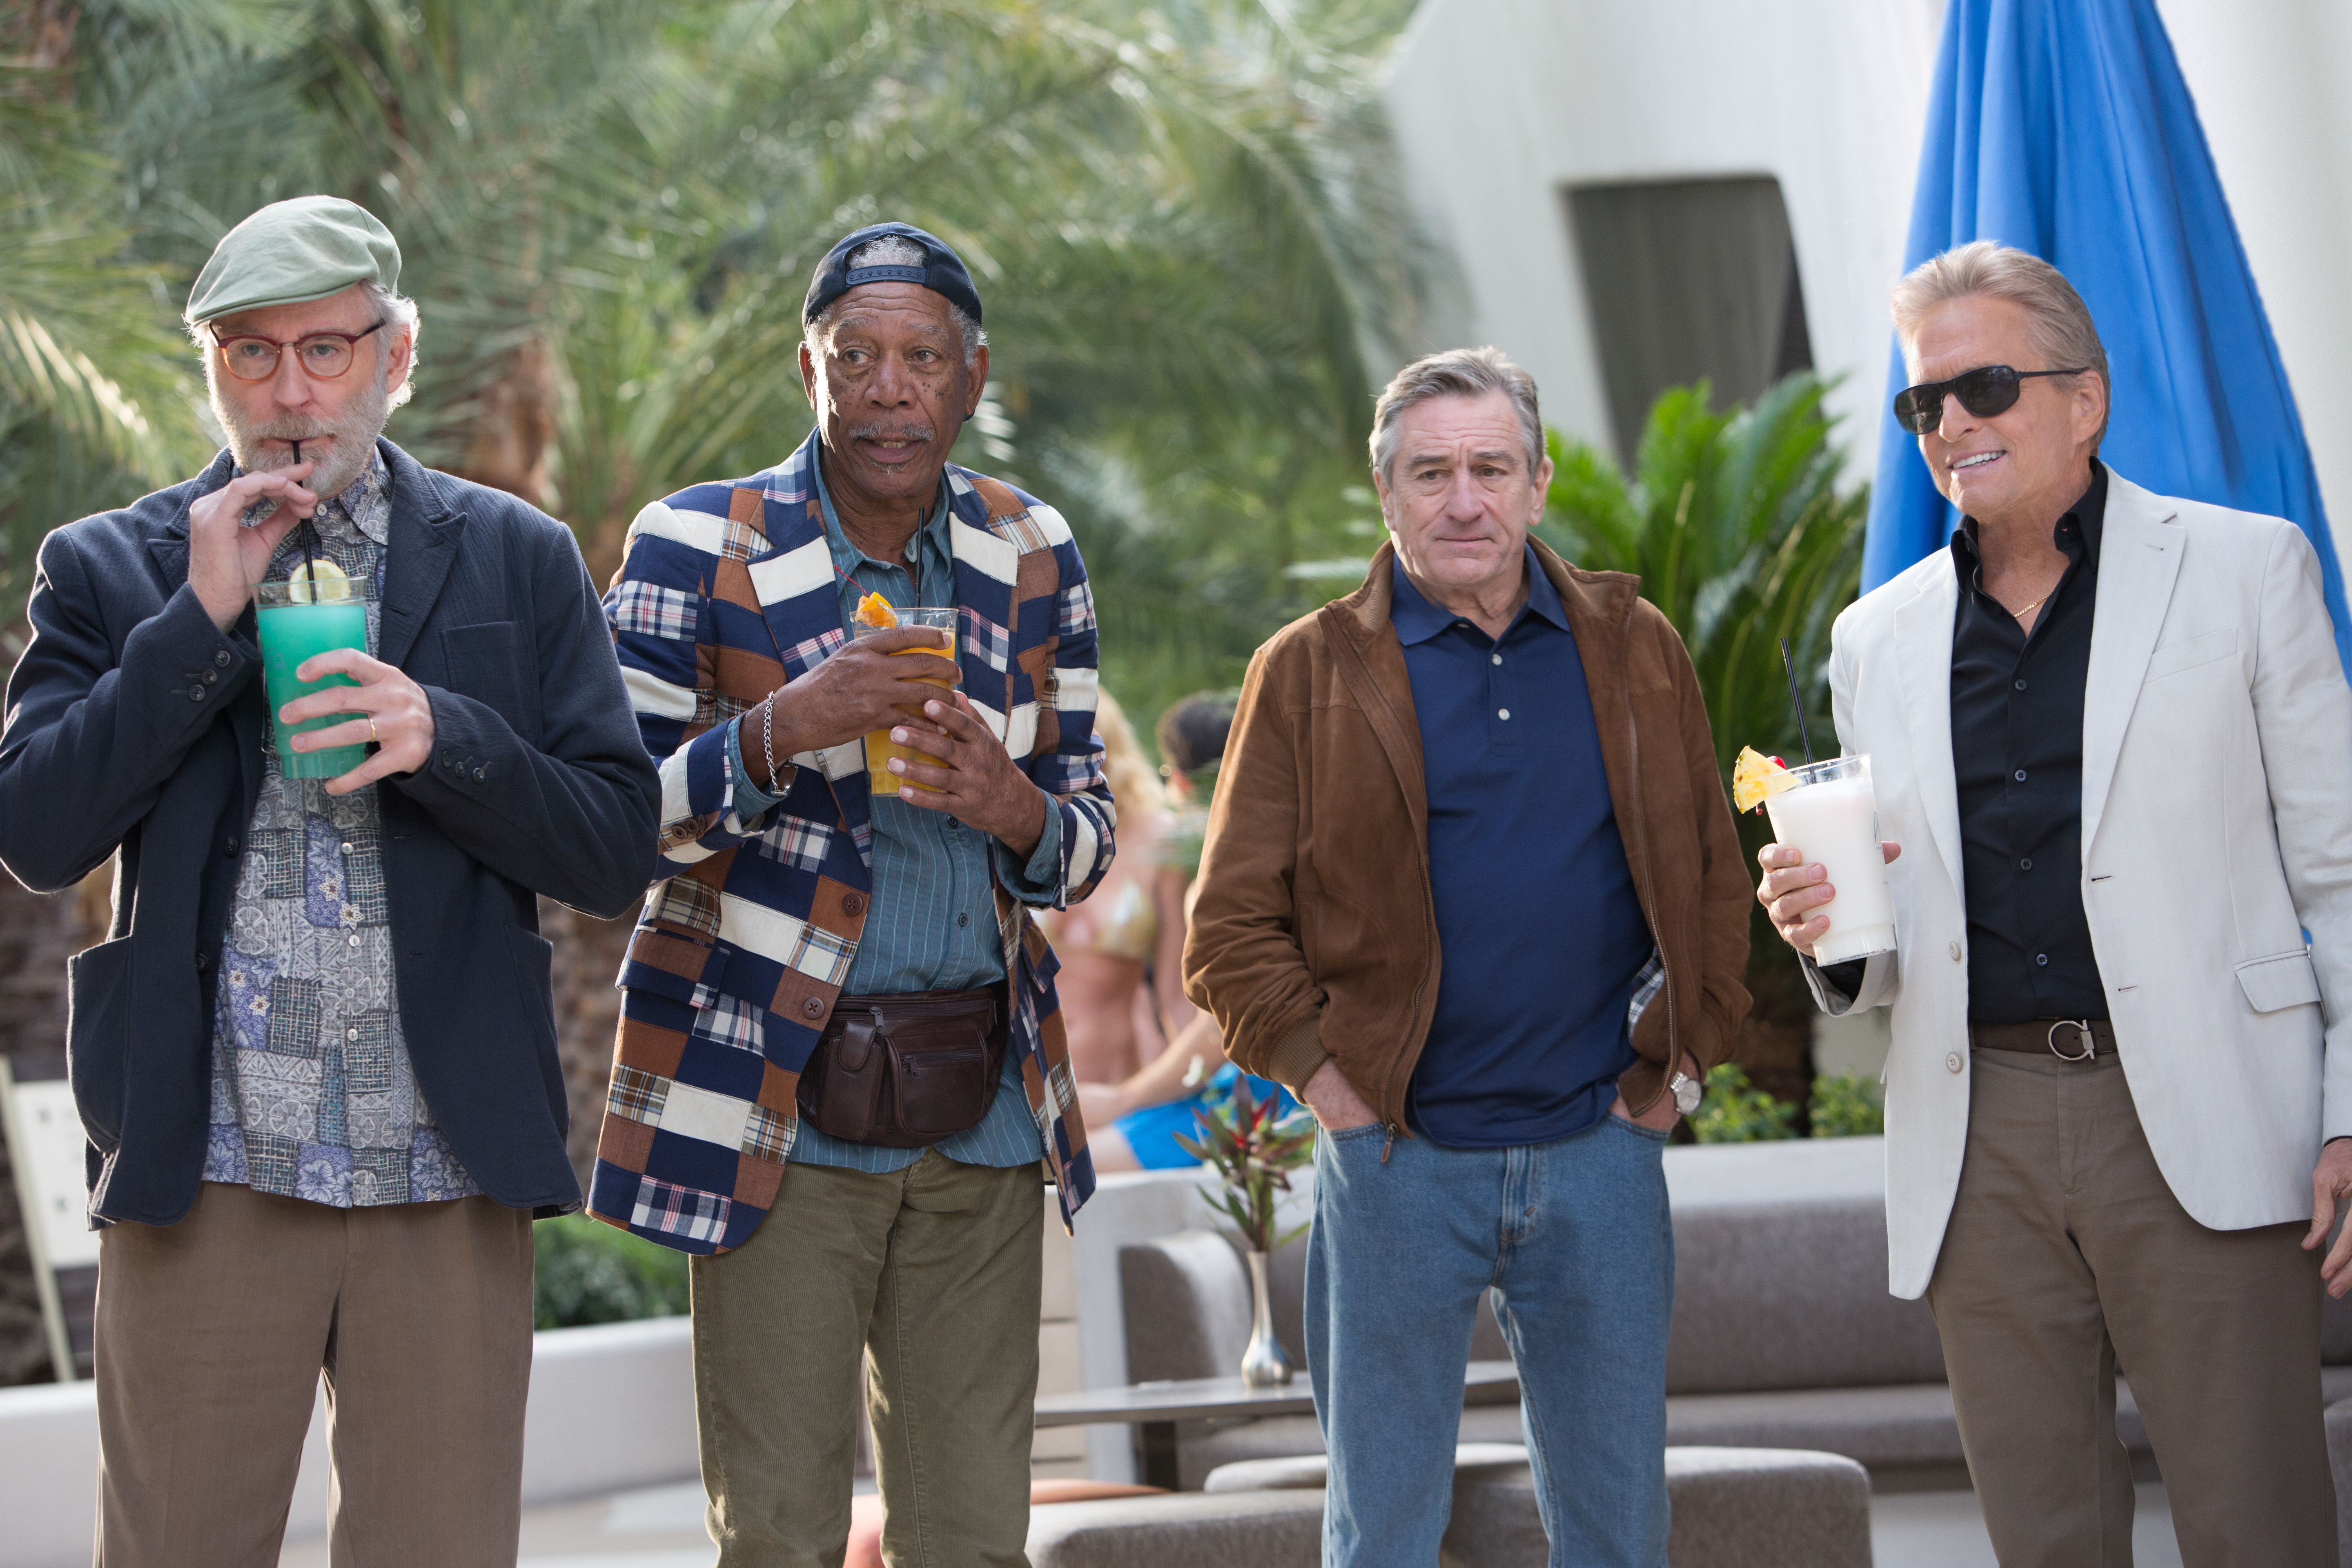 LV 03450a Four Acting Legends Live in Sin in New Last Vegas Official Poster